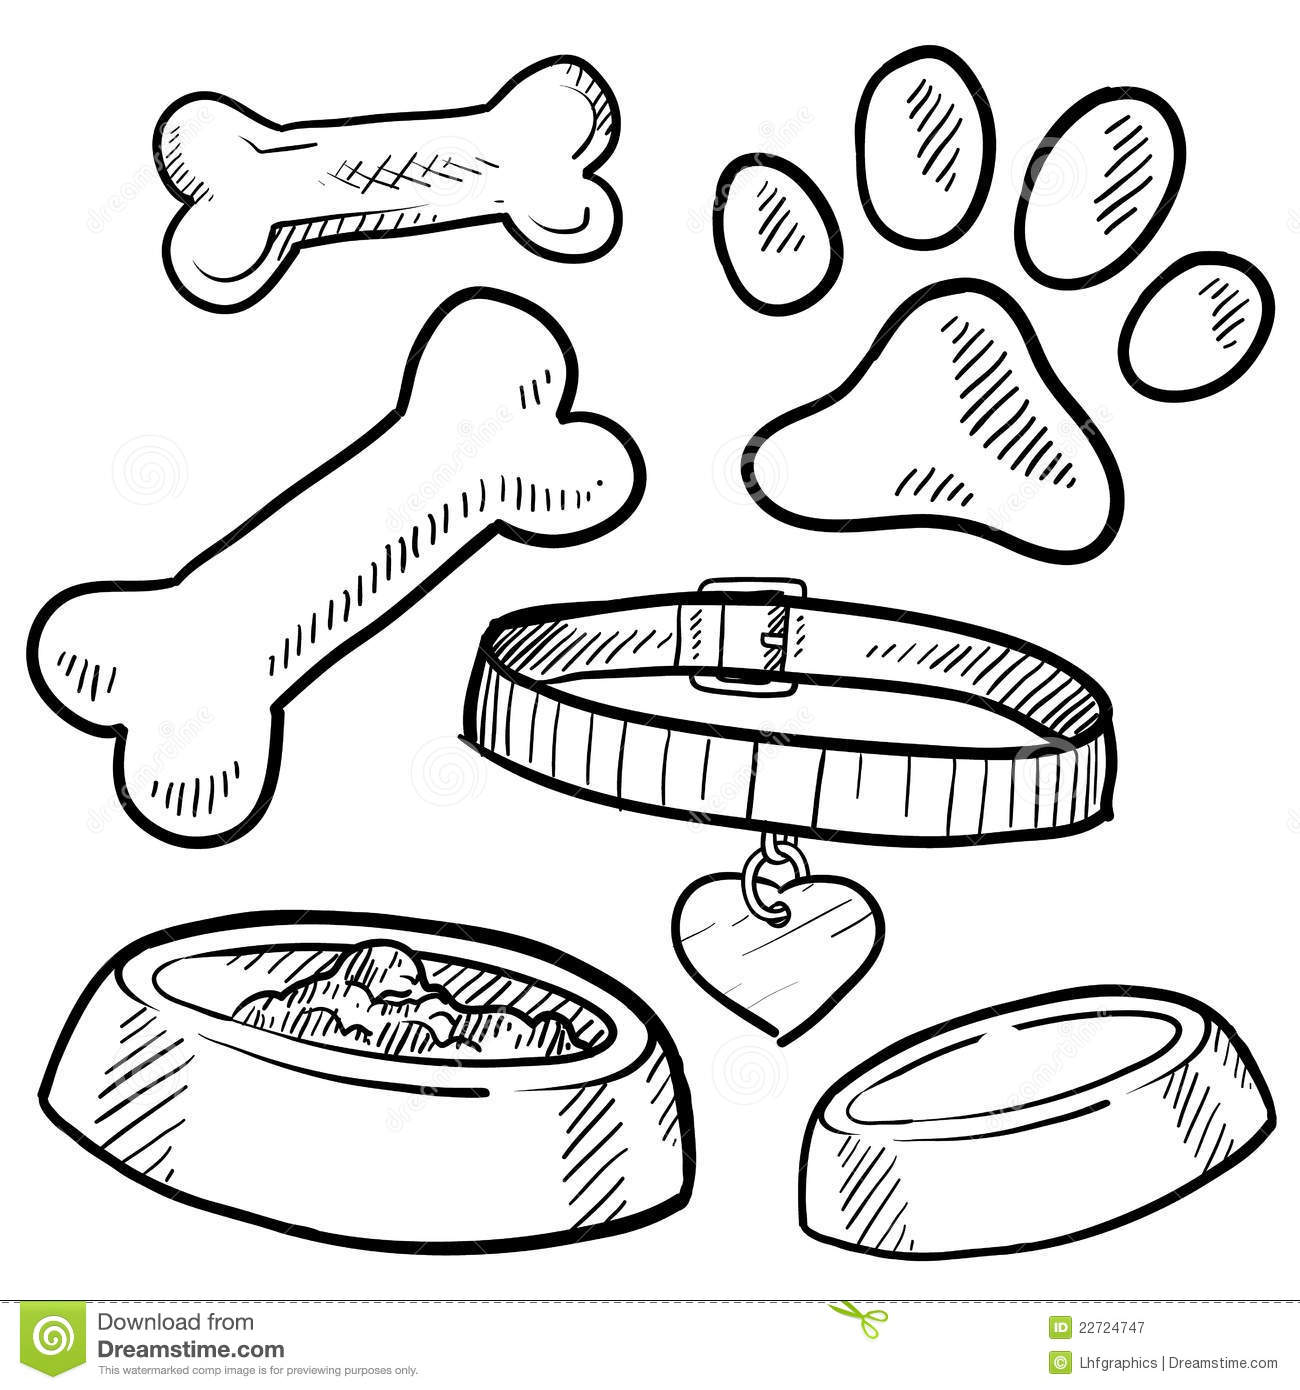 Pet Dog Items Sketch Stock Vector Illustration Of Treat 22724747